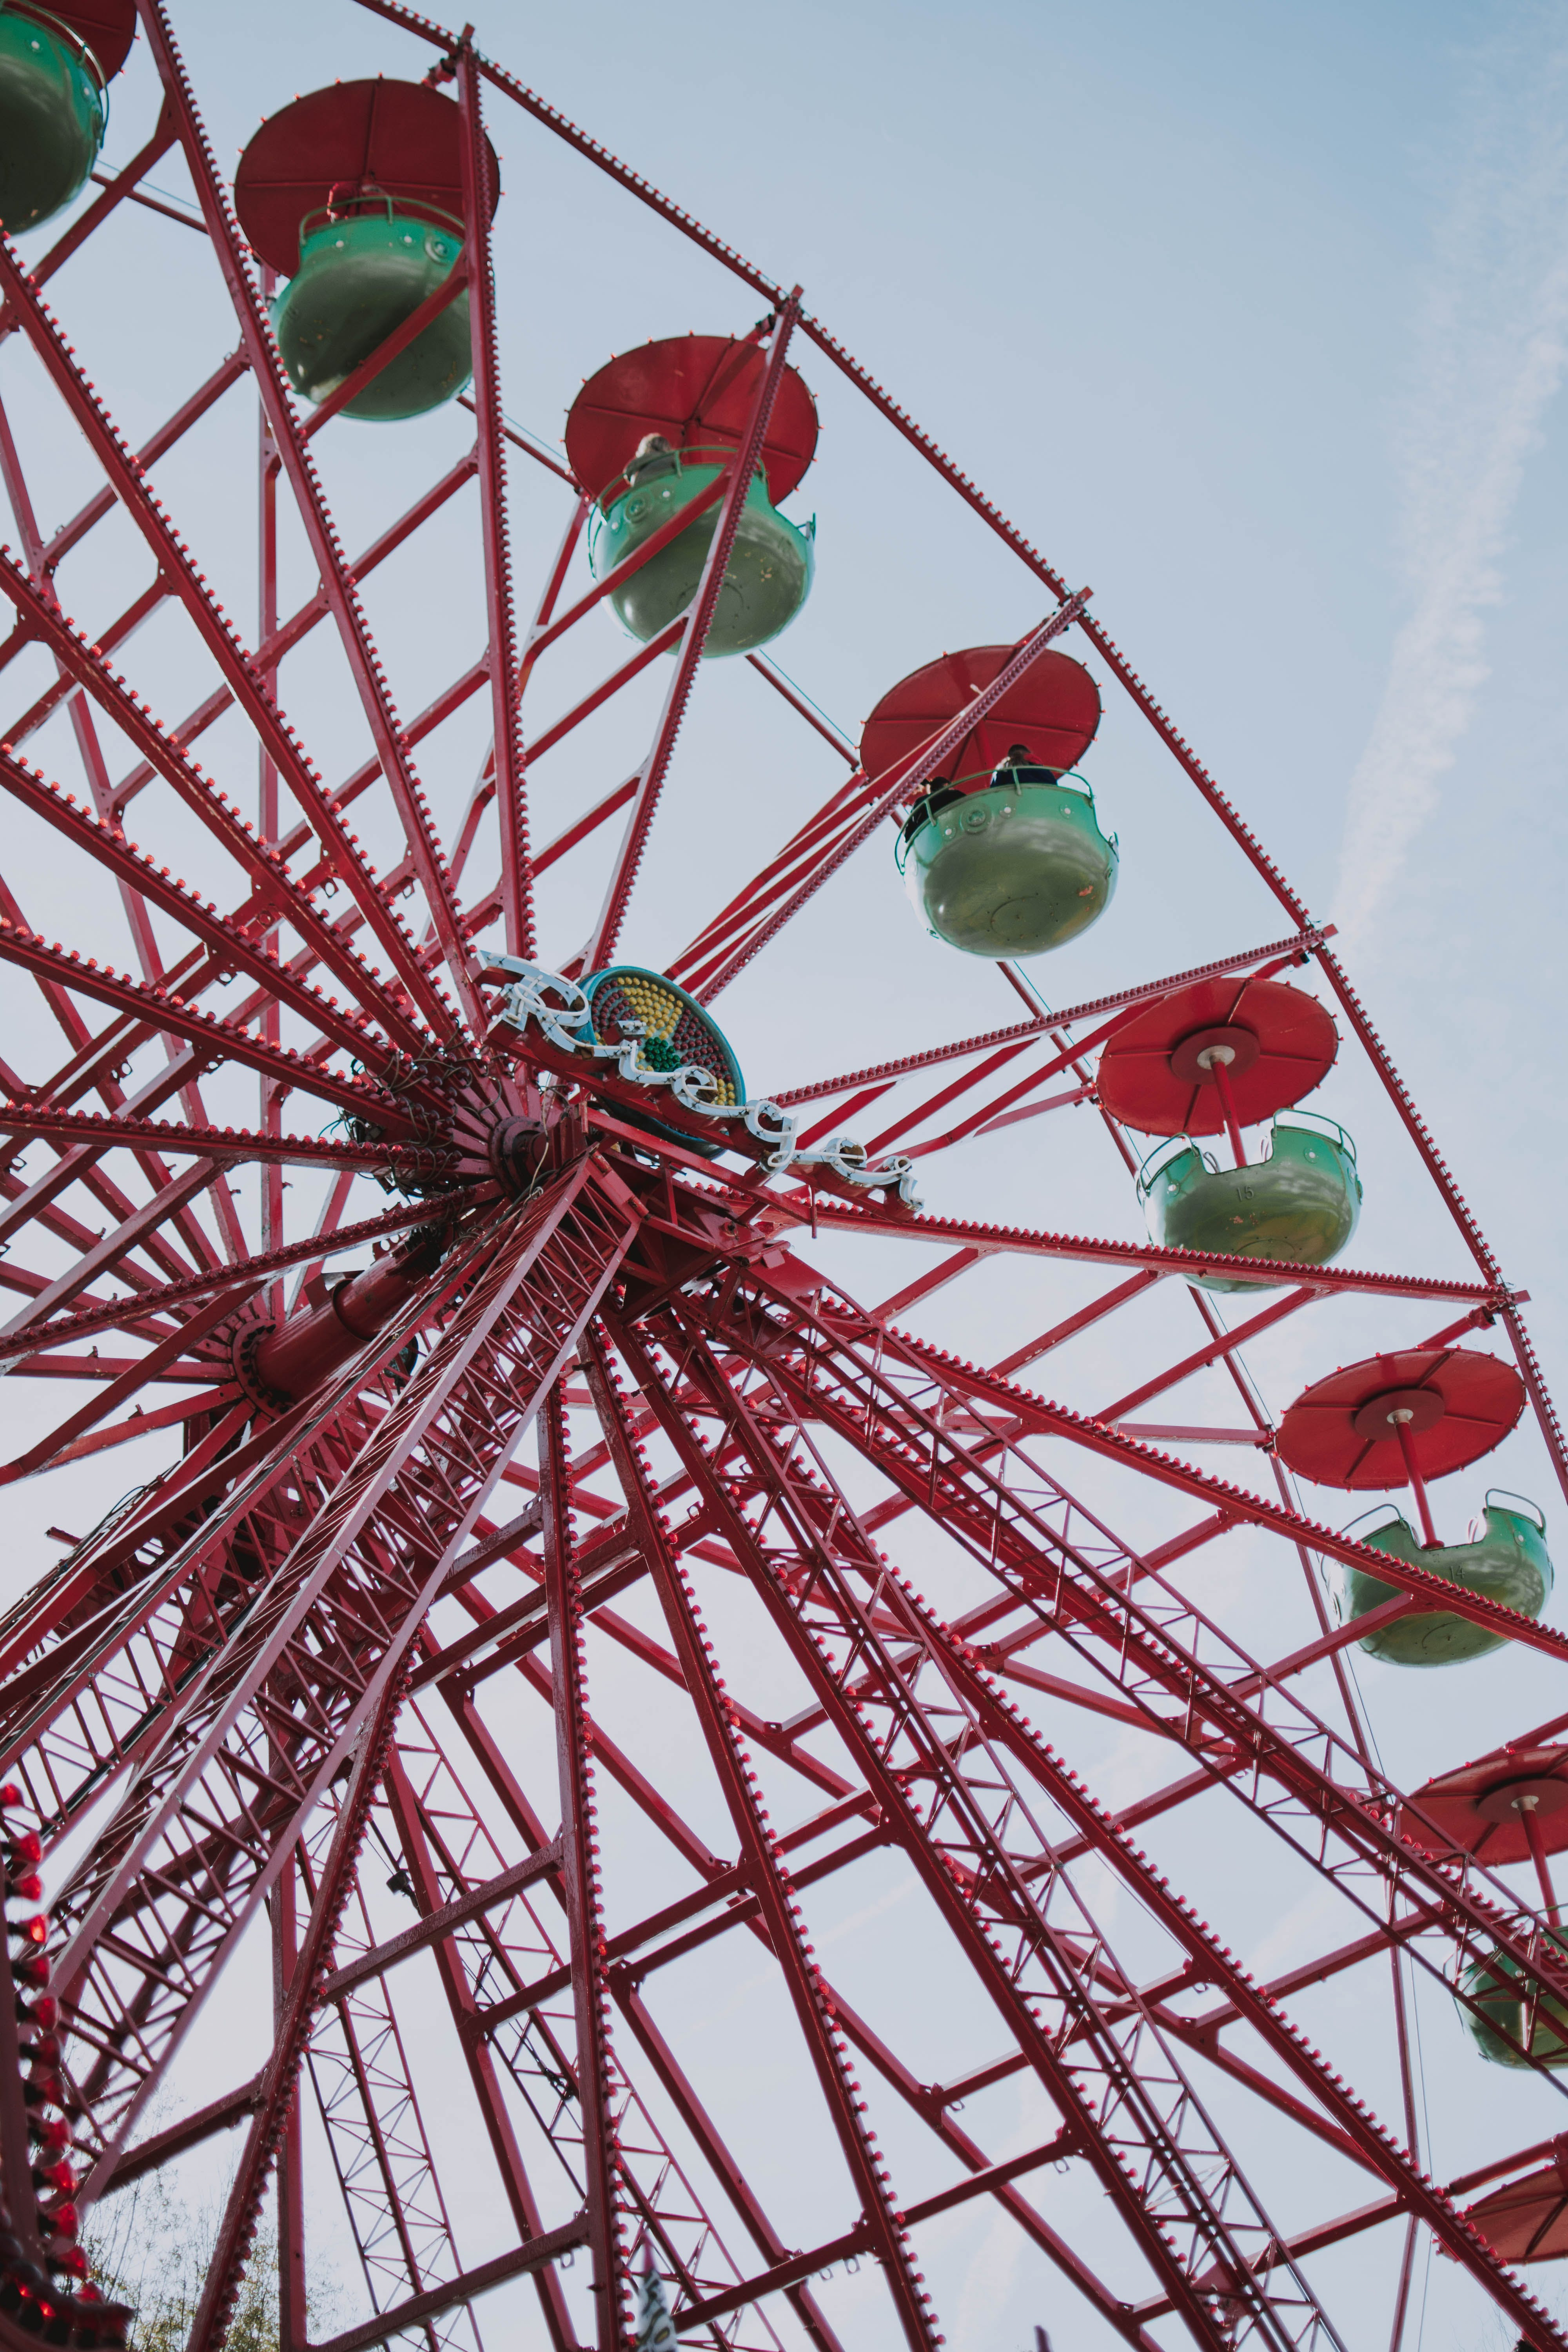 Close up photo of a Ferris Wheel